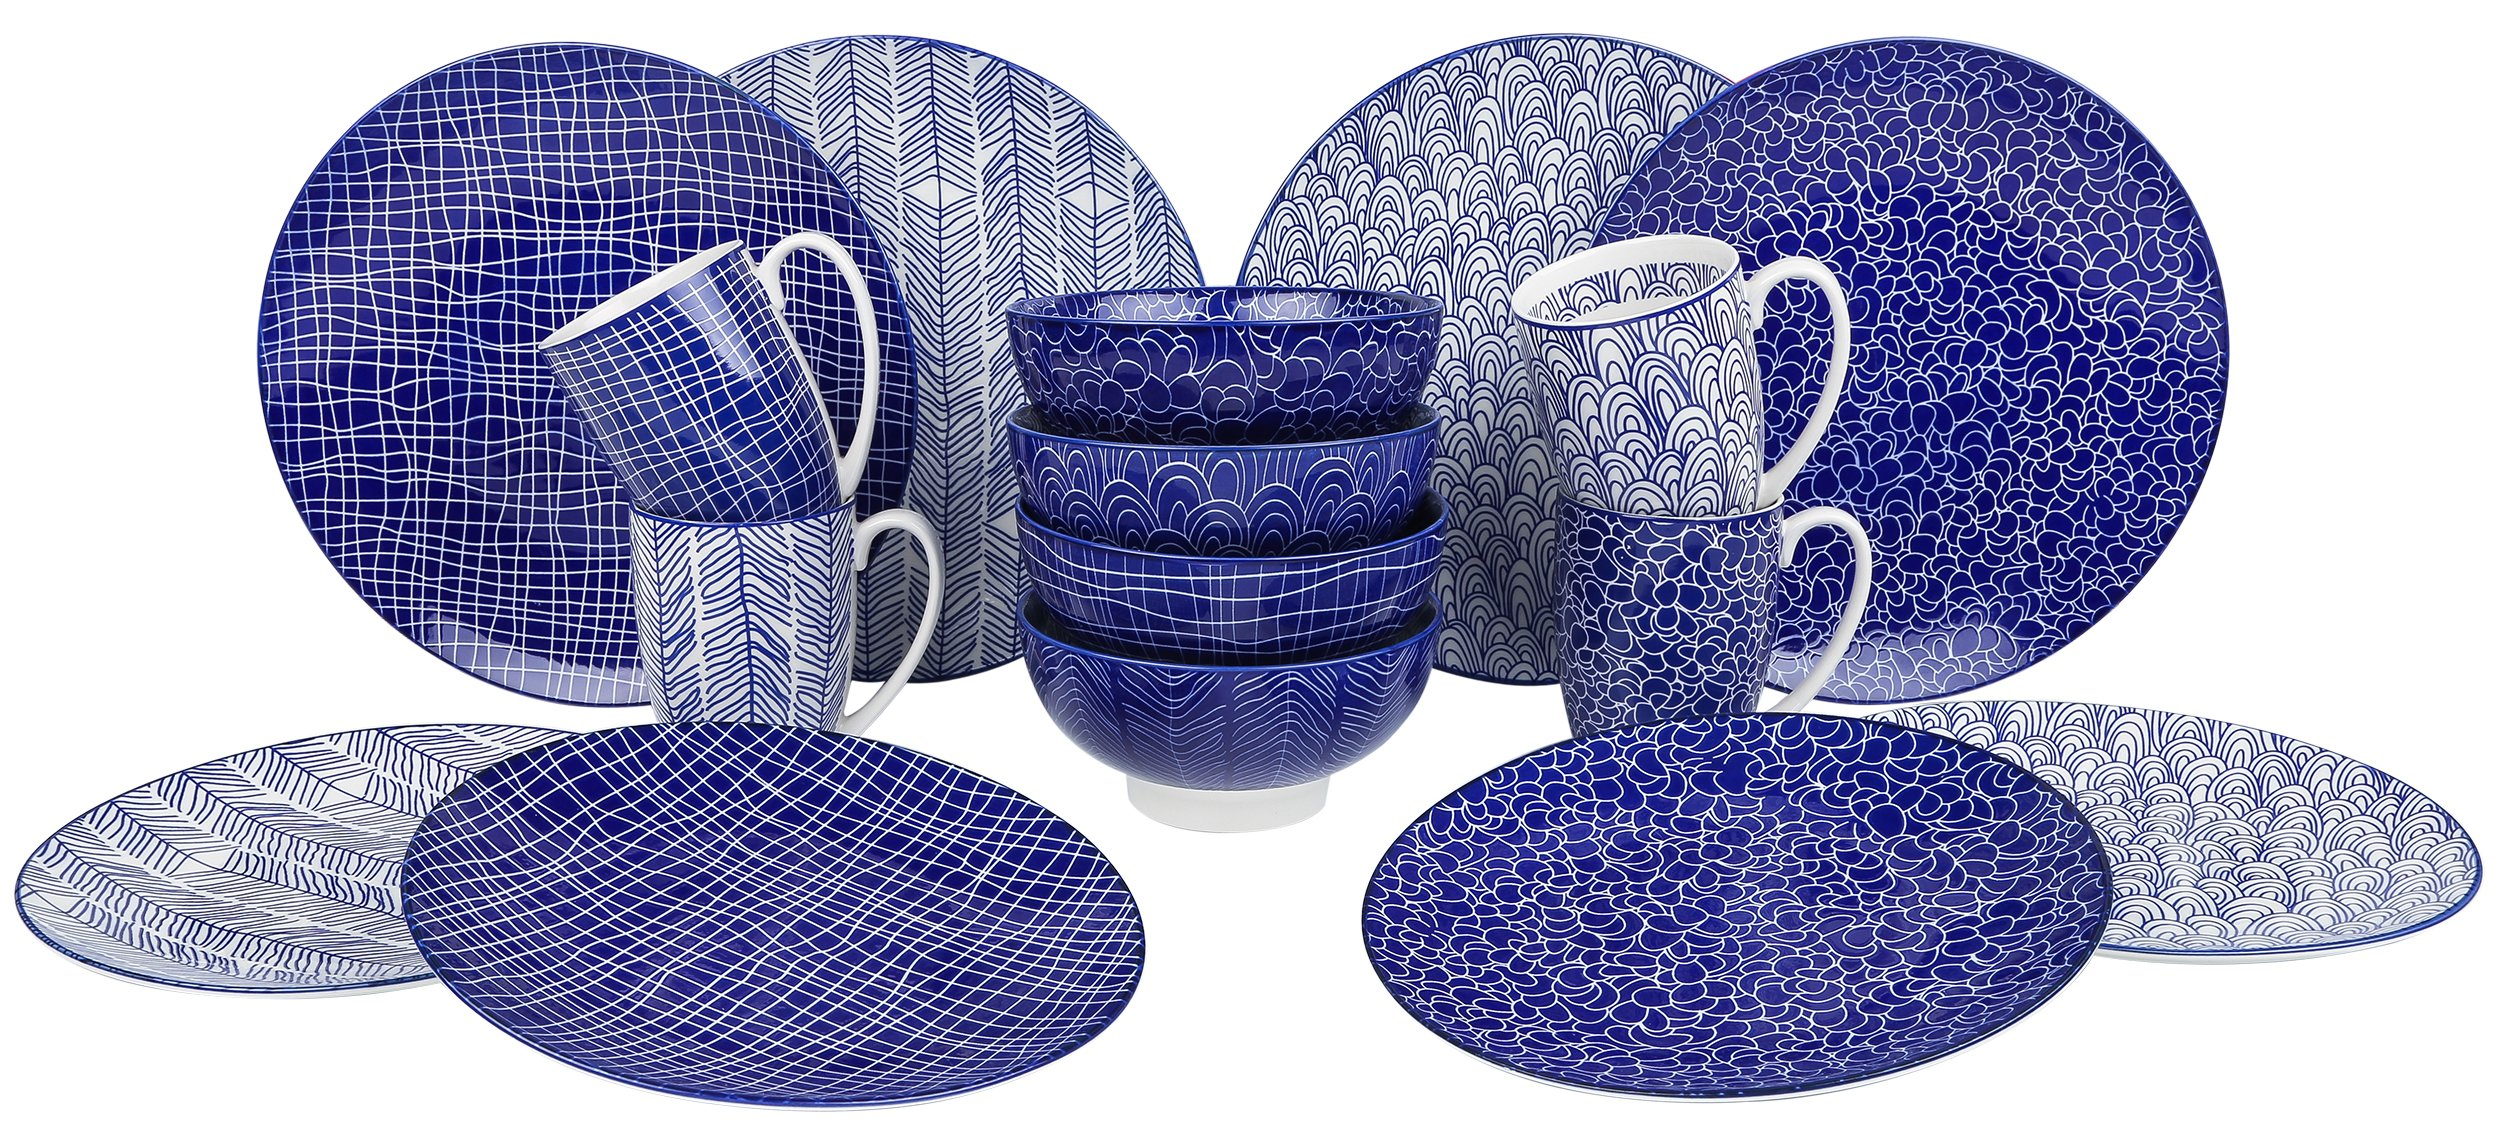 vancasso Porcelain Dinnerware16-Piece Set of 4, TAKAKI Hand Pattern Patterned Serivce Dishwasher Safe Chip Resistant with Mug Bowls Dessert Plates Dinner Plates - Blue - SAFE MATERIAL IN HIGH QUALITY: VANCASSO TAKAKI Set is made of chip resistant porcelain, eco-friendly and certified painting, and gloss glaze.It's lead free and cadmium free.Safe for you and your family. VANCASSO care for what you care most. HIGH TEMPERATURE RESISTANCE: Vancasso dinnerware is heated over 2000℉, so as to remove hazard and to be firm. Safe for dishwasher, microwave and freezer. UNIQUE AND TRENDY DESIGN: Blue glazed with four different patterns, features exquisite appearance and fine workmanship, embody owner's classy taste. Search-VANCASSO TAKAKI- to see whole set products. - kitchen-tabletop, kitchen-dining-room, dinnerware-sets - 91RX5uUsD6L -